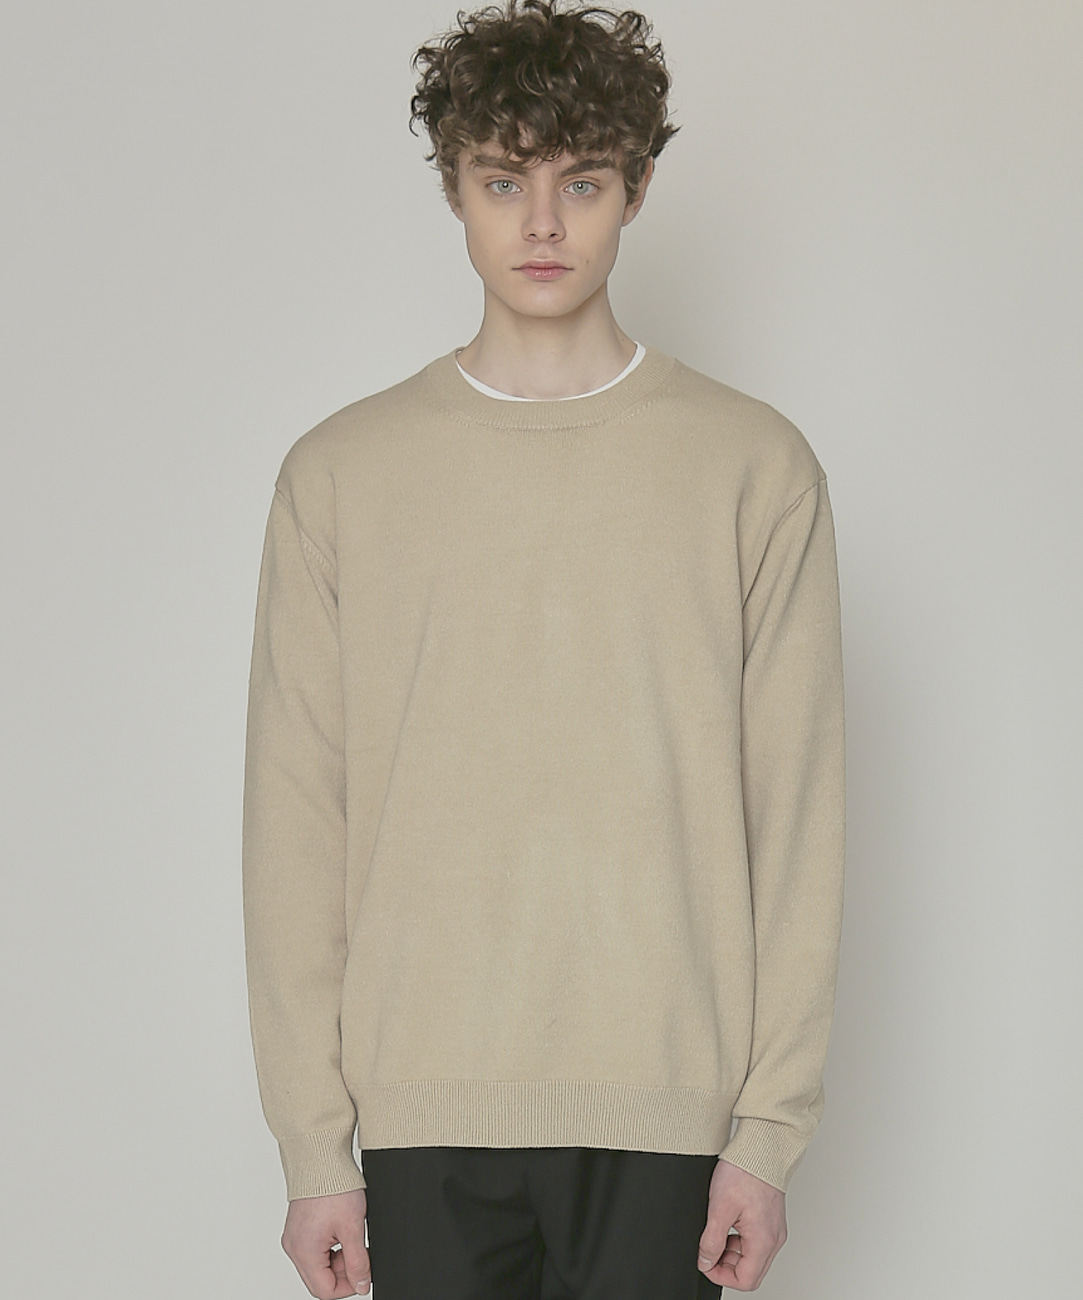 DWS SOFT BASIC ROUND SWEATER(SAND)